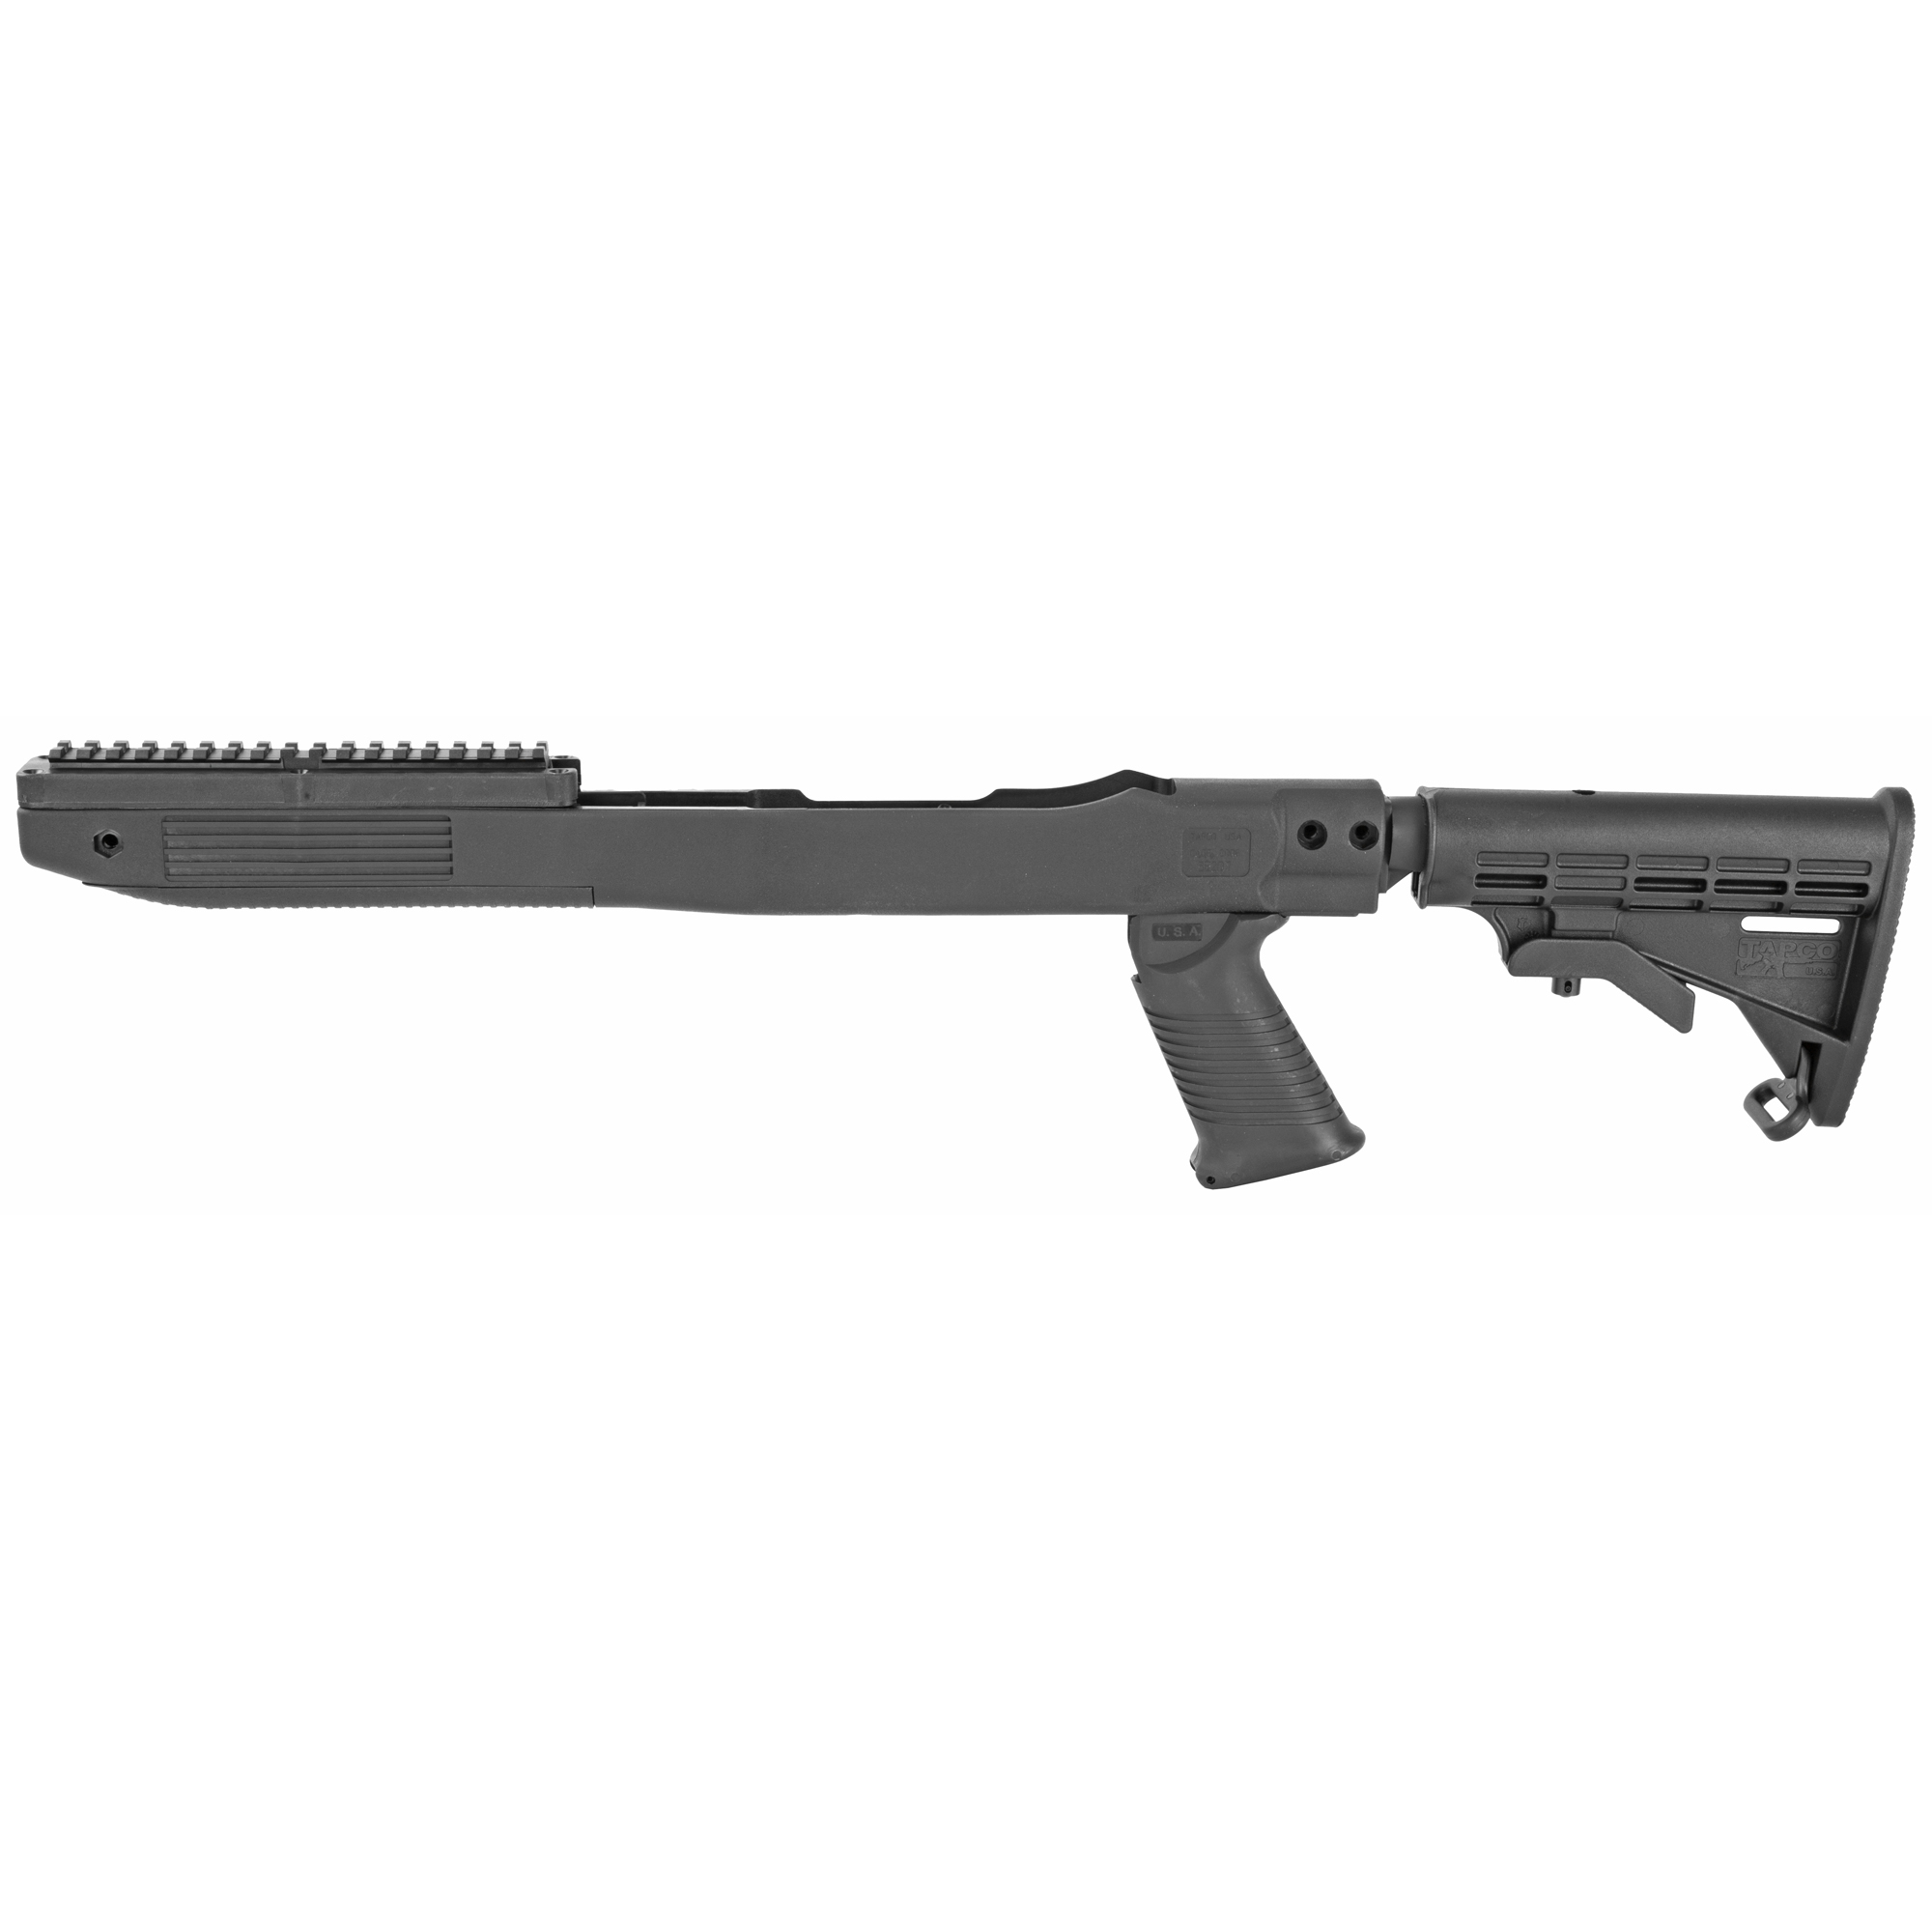 "Are you bored with you 10/22? Do you feel like it needs to be beefed up a bit to compete with the other rifles out there? TAPCO wants to change how people are looking at the 10/22 with the INTRAFUSE 10/22 Standard Stock System. They've put together an easily installed stock system that updates the style of your 10/22 by being completely made of military grade composite. The system will upgrade the ergonomics of your rifle by giving you a 6 position adjustable buttstock"" SAW Style Pistol Grip"" and two different receiver extensions. The straight extension offers you a perfectly aligned cheek weld while using optics and the angled tube enables you to use the iron sights without restrictions."